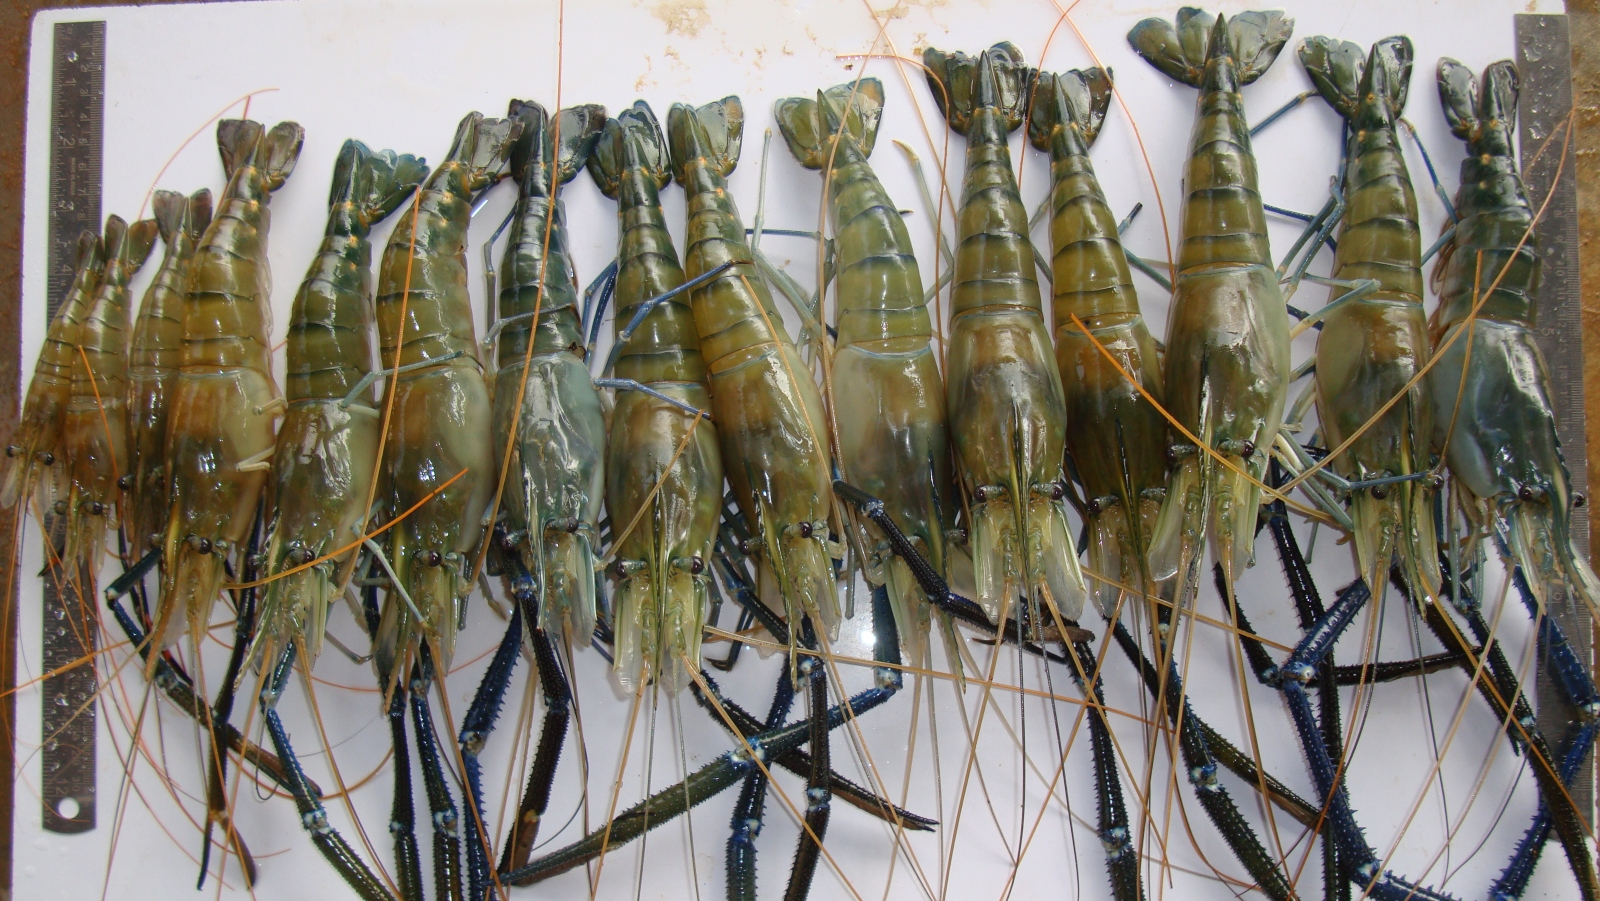 'Super shrimp'may prevent a disease that affects millions - ISRAEL21c